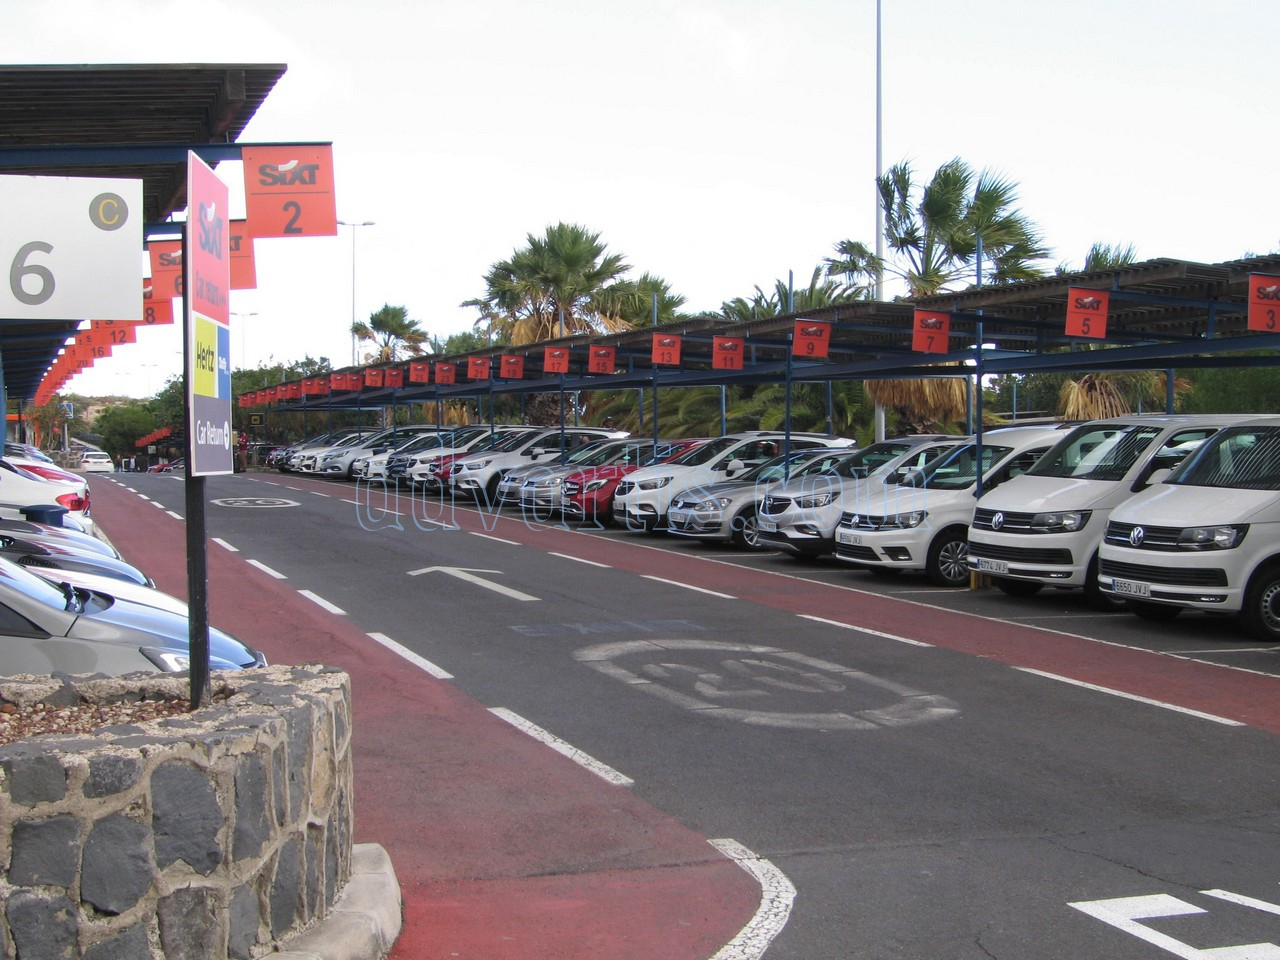 Car hire Tenerife airport south Sixt